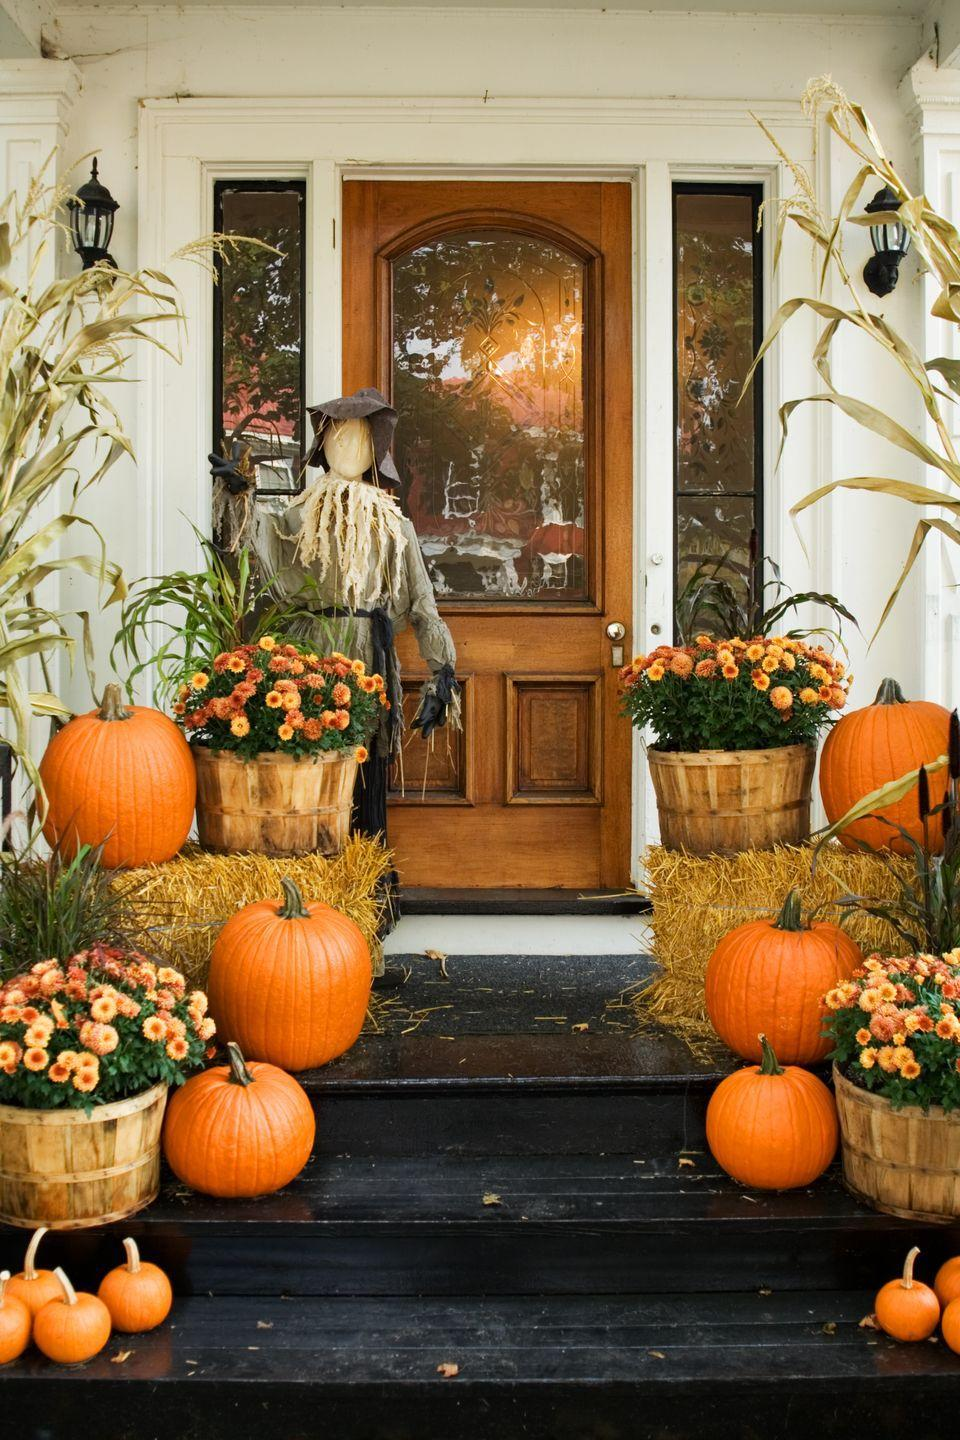 <p>You've stocked up at the pumpkin patch, toured the corn maze, and gathered all the inspiration and materials you need to create this lush and multilayered door decoration. So nestle mums in apple baskets, create height with hay bales, frame the scene with corn stalks, and place a friendly scarecrow by the door to greet guests. Door decor win!<br></p>